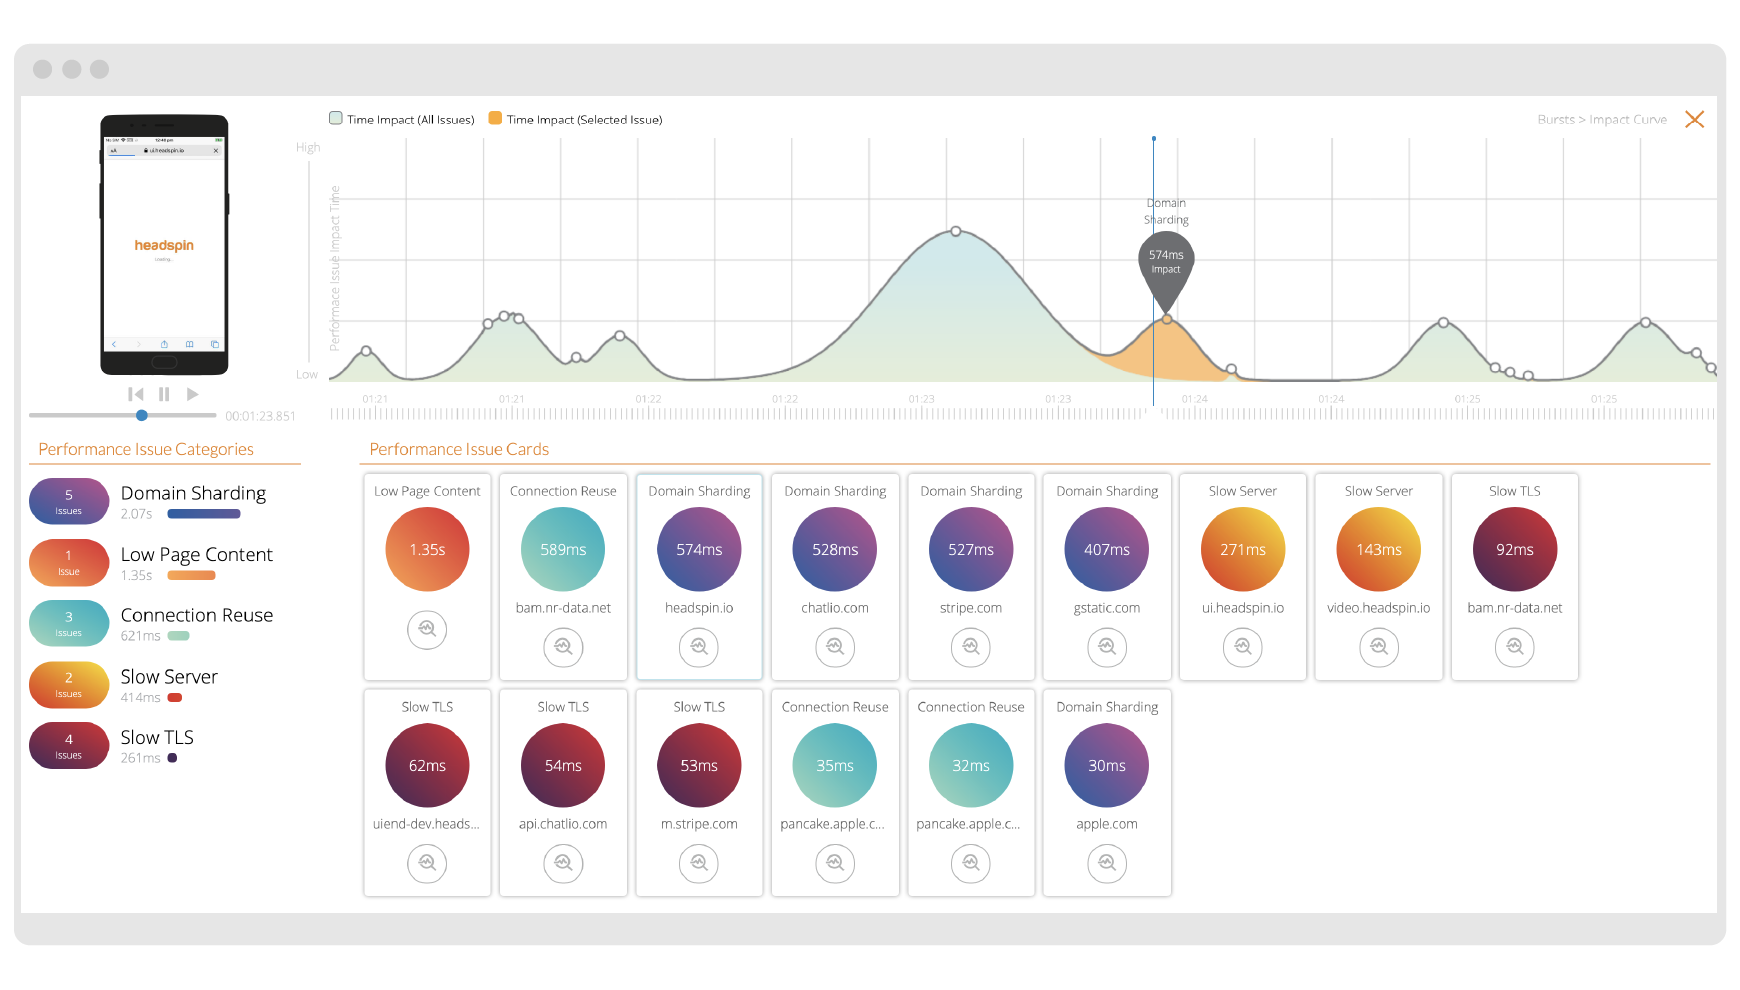 Machine Learning Insights:  Get complete visibility with ML-based insights and recommendations, and continuously monitor and analyze the KPIs that matter to you, from load times and page content to blank and frozen screens.